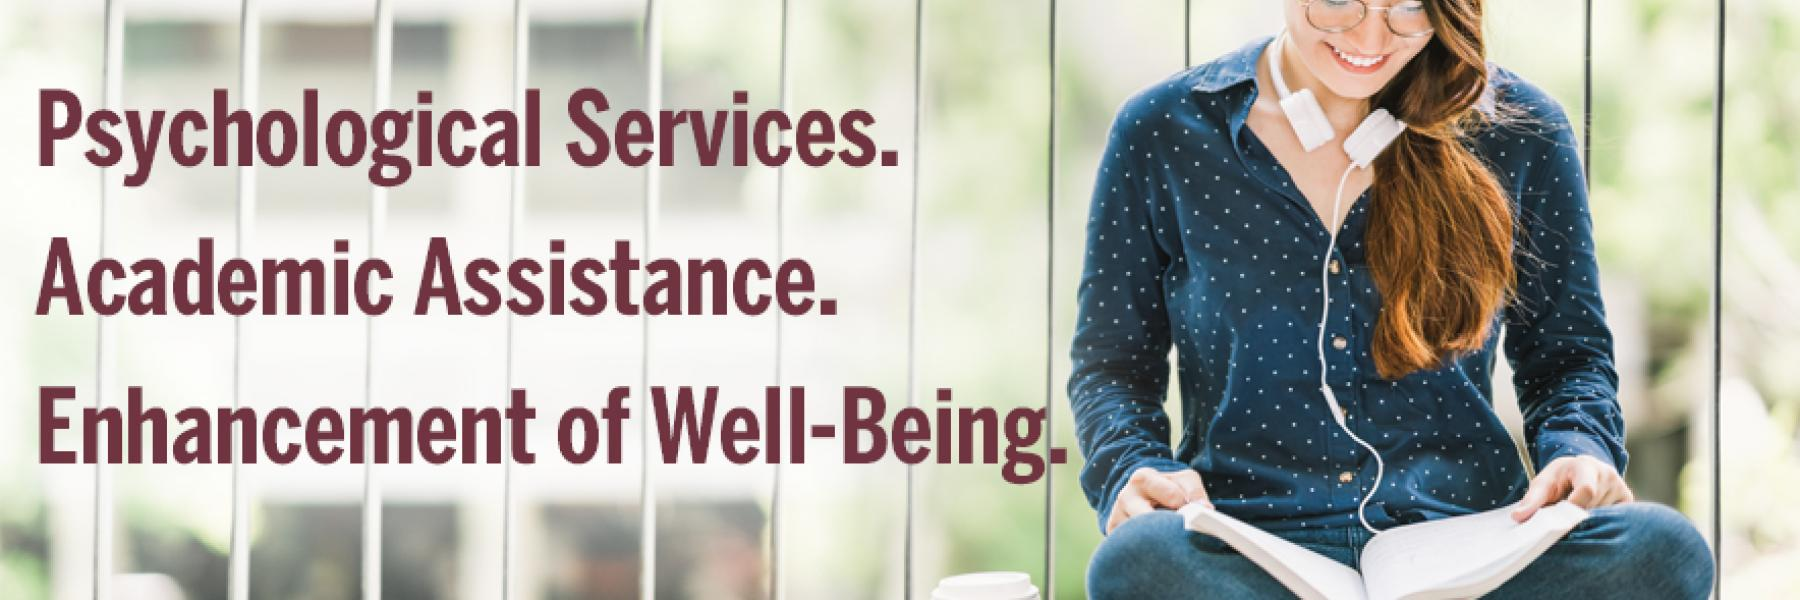 Psychological Services, Academic Assistance, Enhancement of well-being